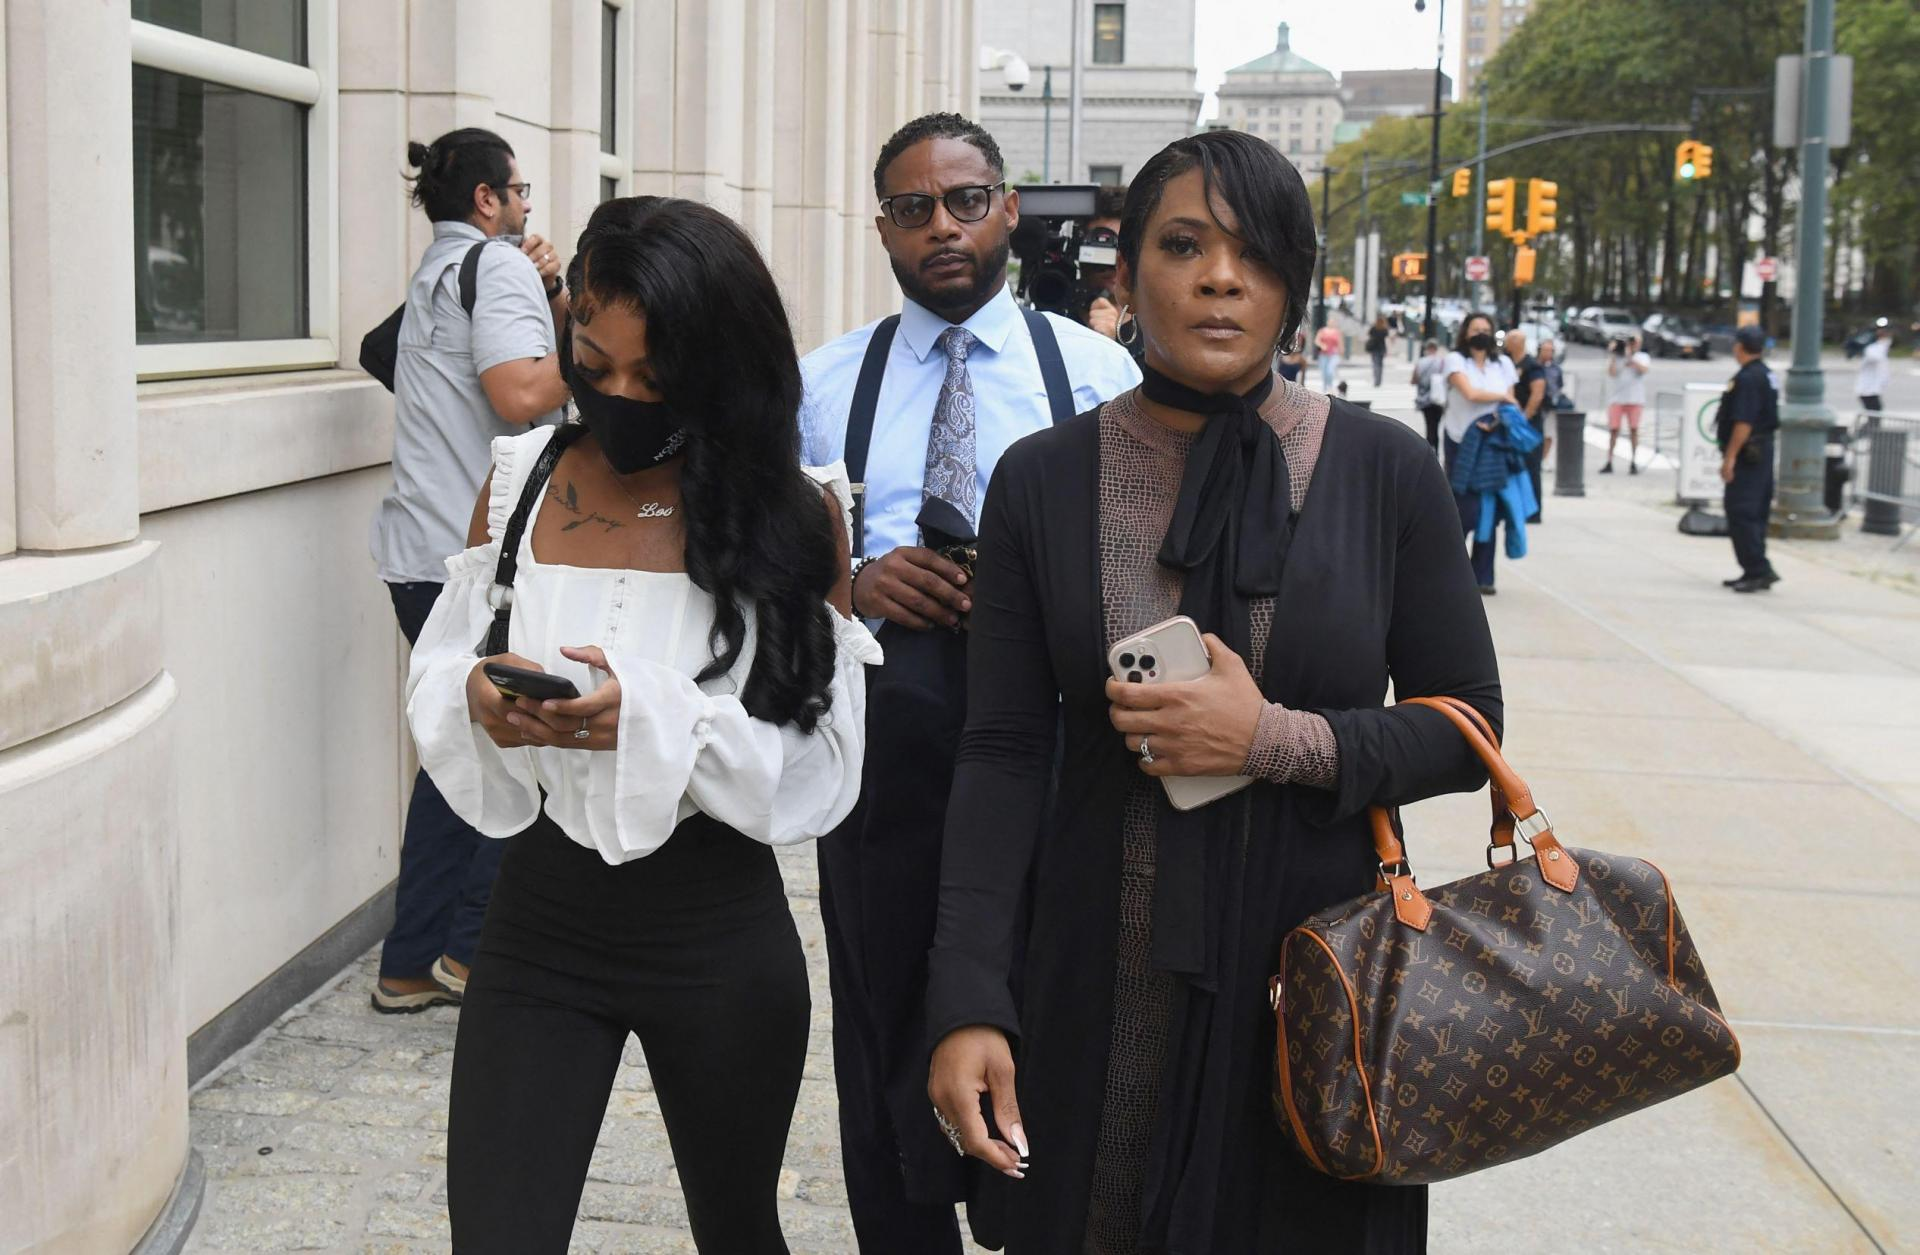 Family members of victim Jocelyn Savage arrive to attend the trial in the racketeering and sex trafficking case of R. Kelly at Brooklyn Federal Court in Brooklyn, New York on August 18, 2021. Photo: Angela Weiss/AFP